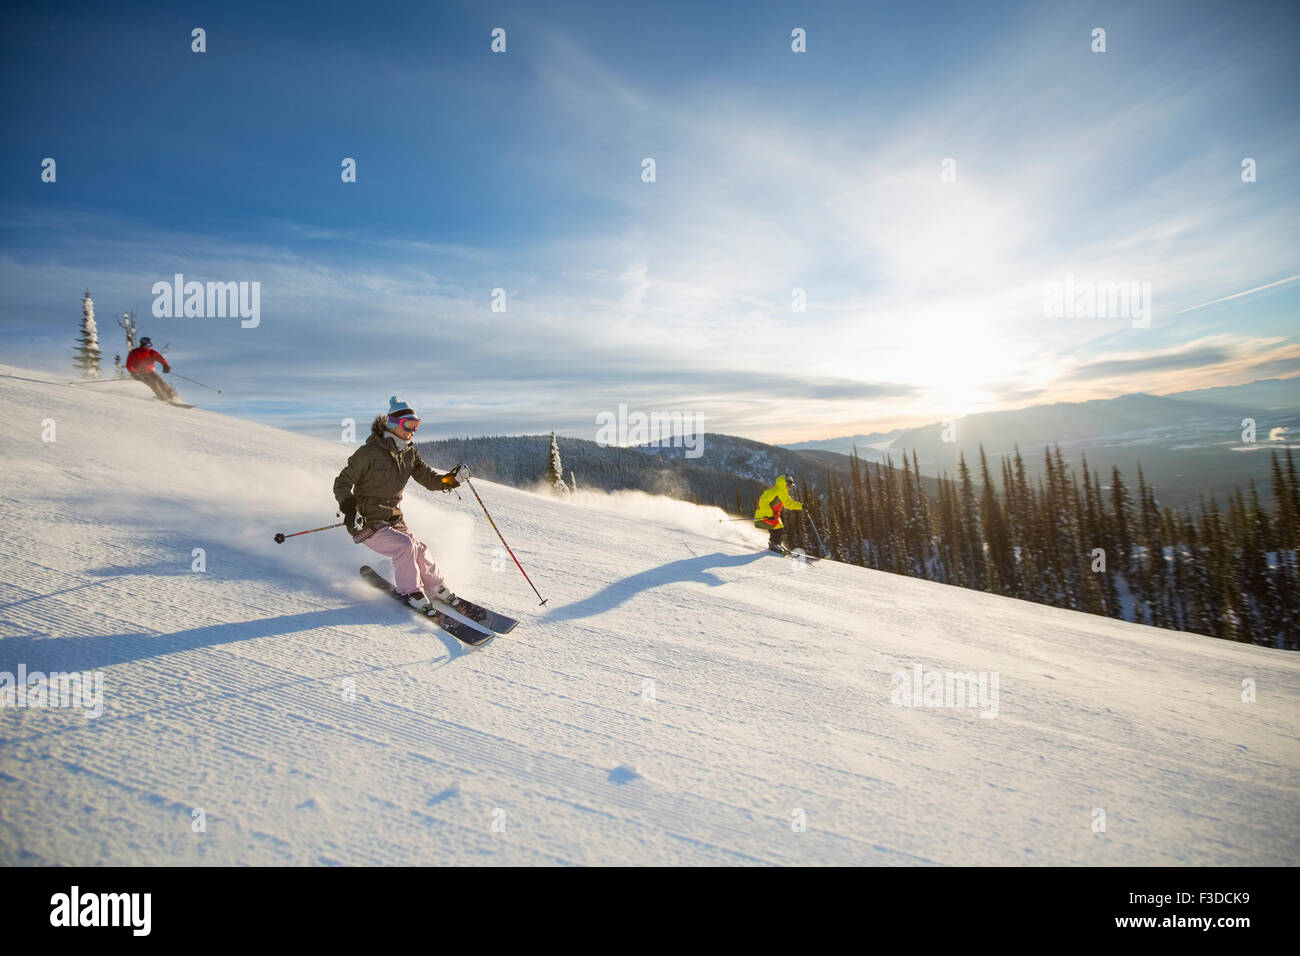 Three people on ski slope at sunlight - Stock Image